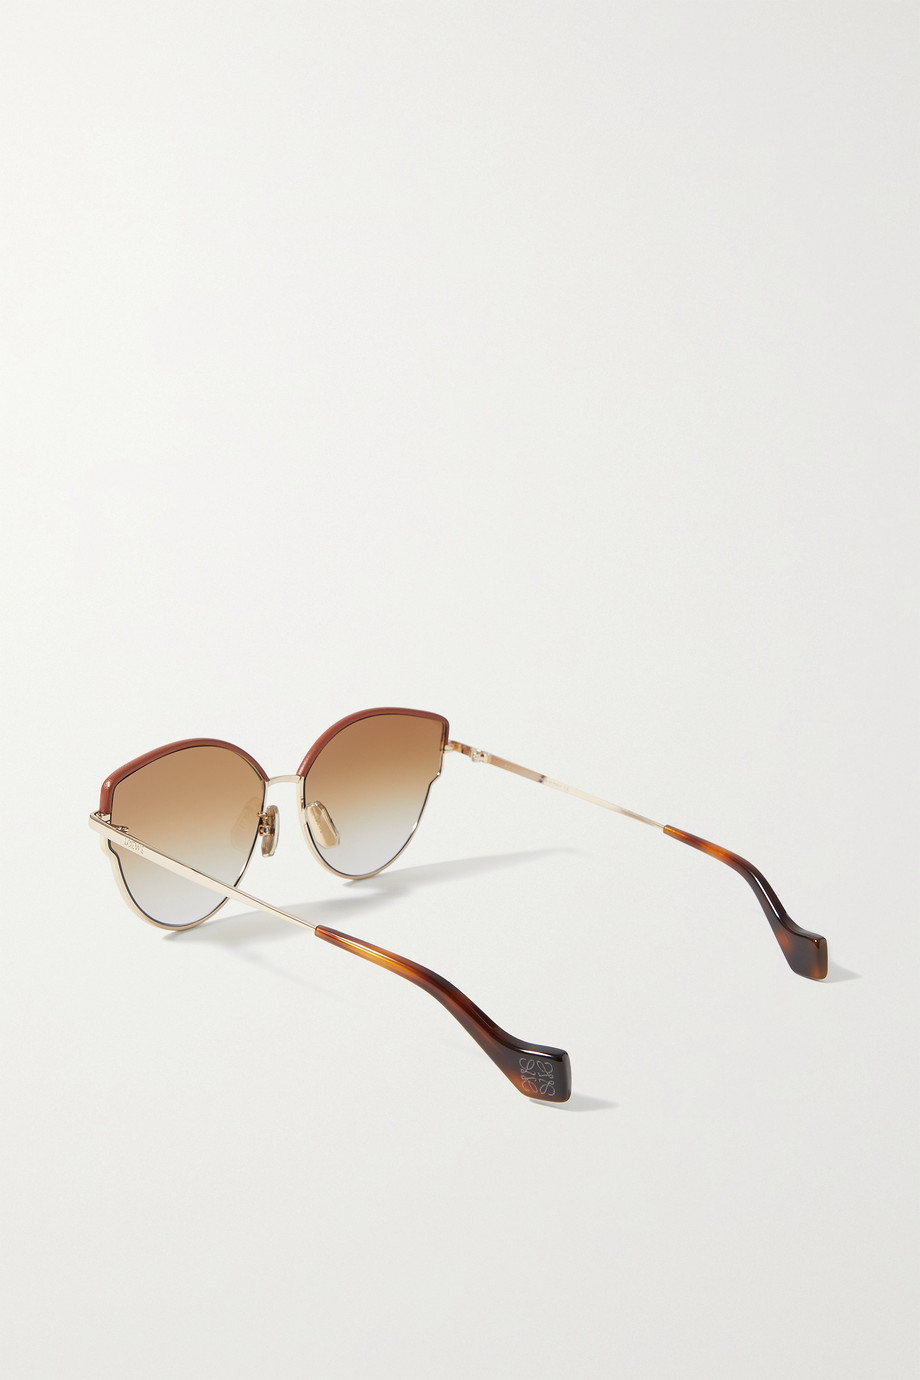 LOEWE Cat-eye leather-trimmed gold-tone and tortoiseshell acetate sunglasses